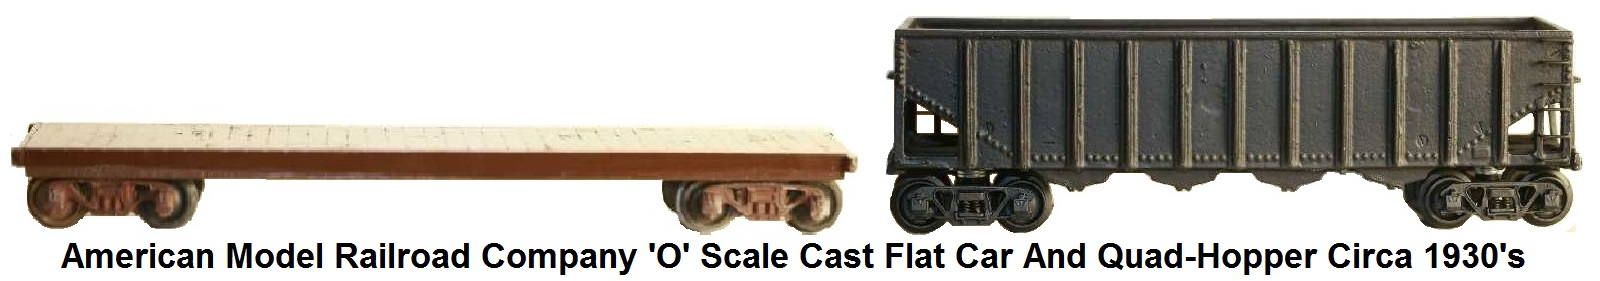 Ed Alexander/American Model Railroads Company 'O' scale cast flat car